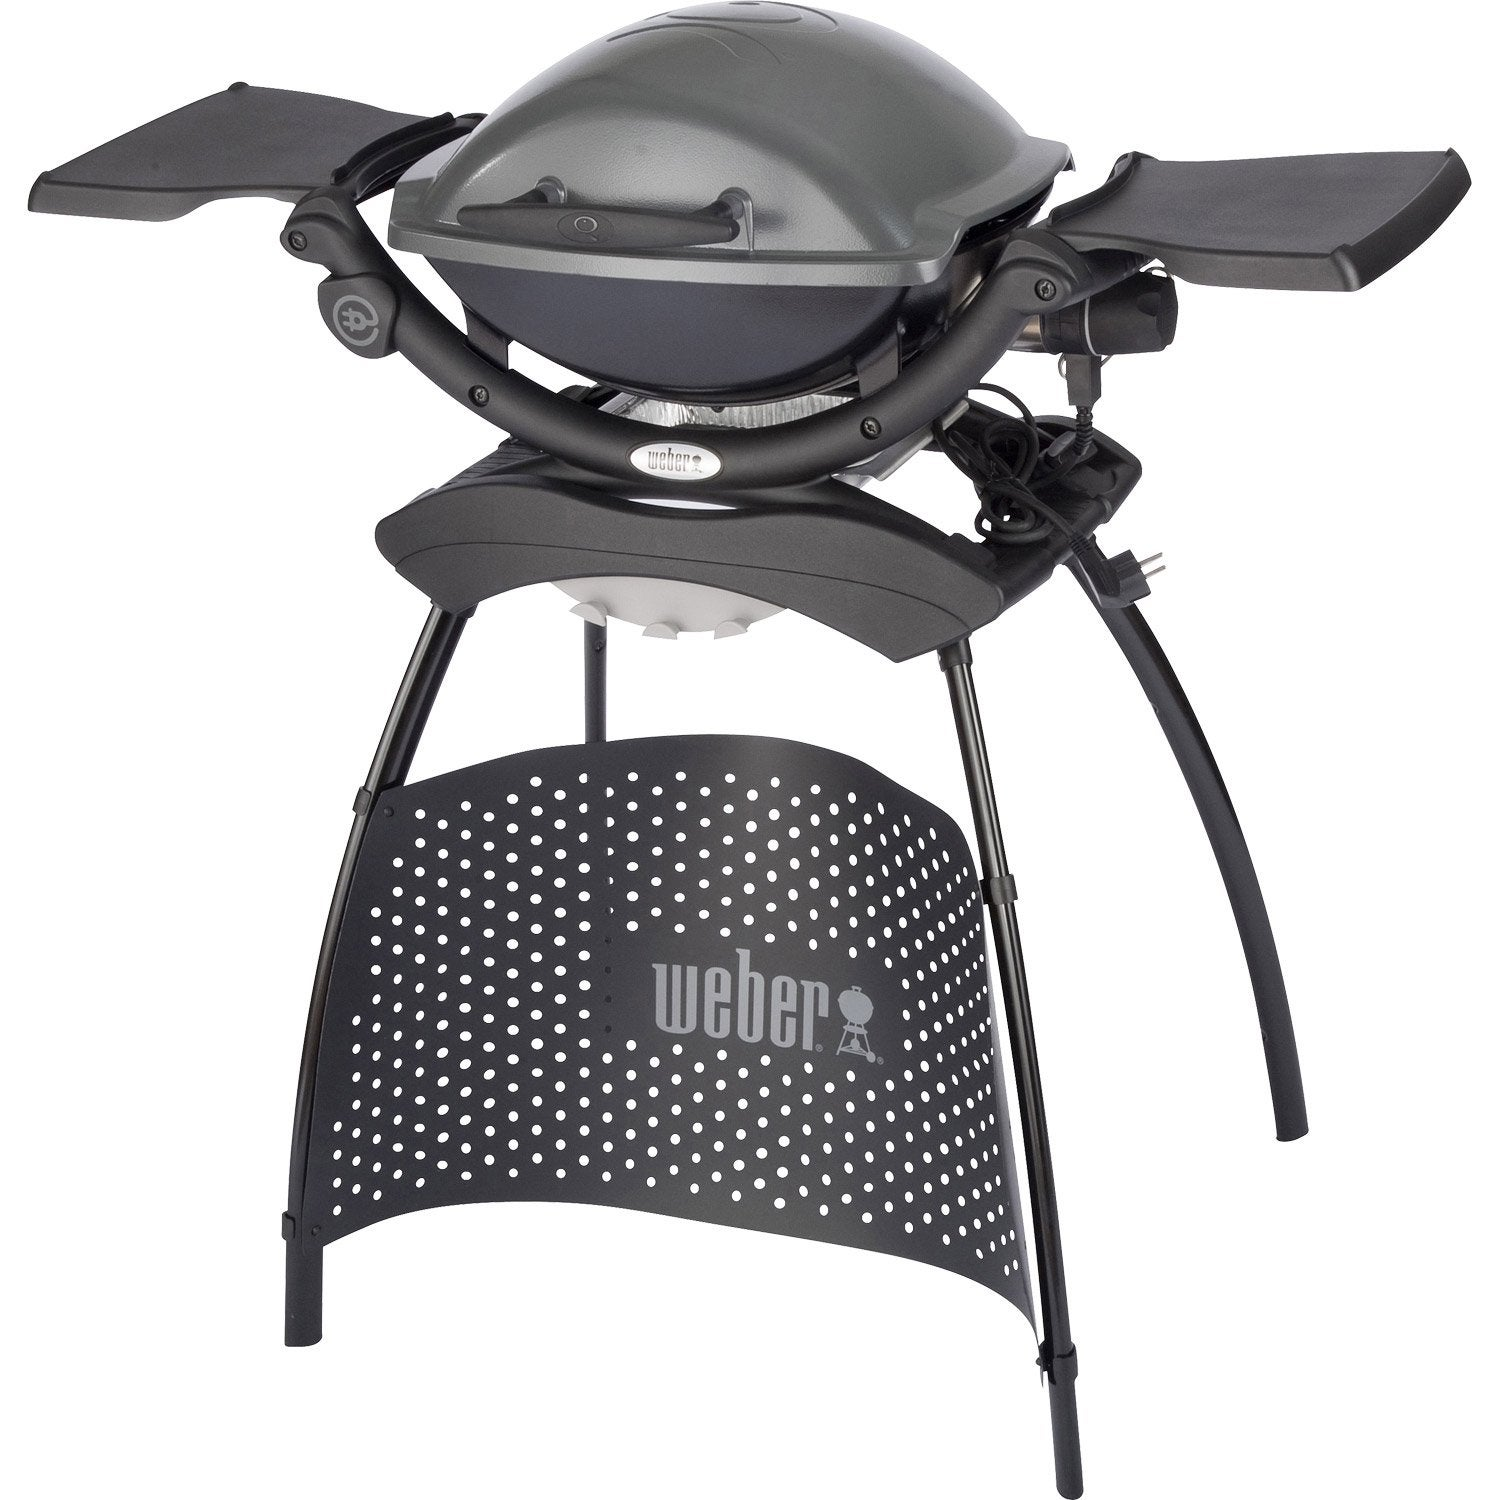 Barbecue lectrique weber q 1400 stand gris anthracite leroy merlin - Barbecue weber charbon leroy merlin ...